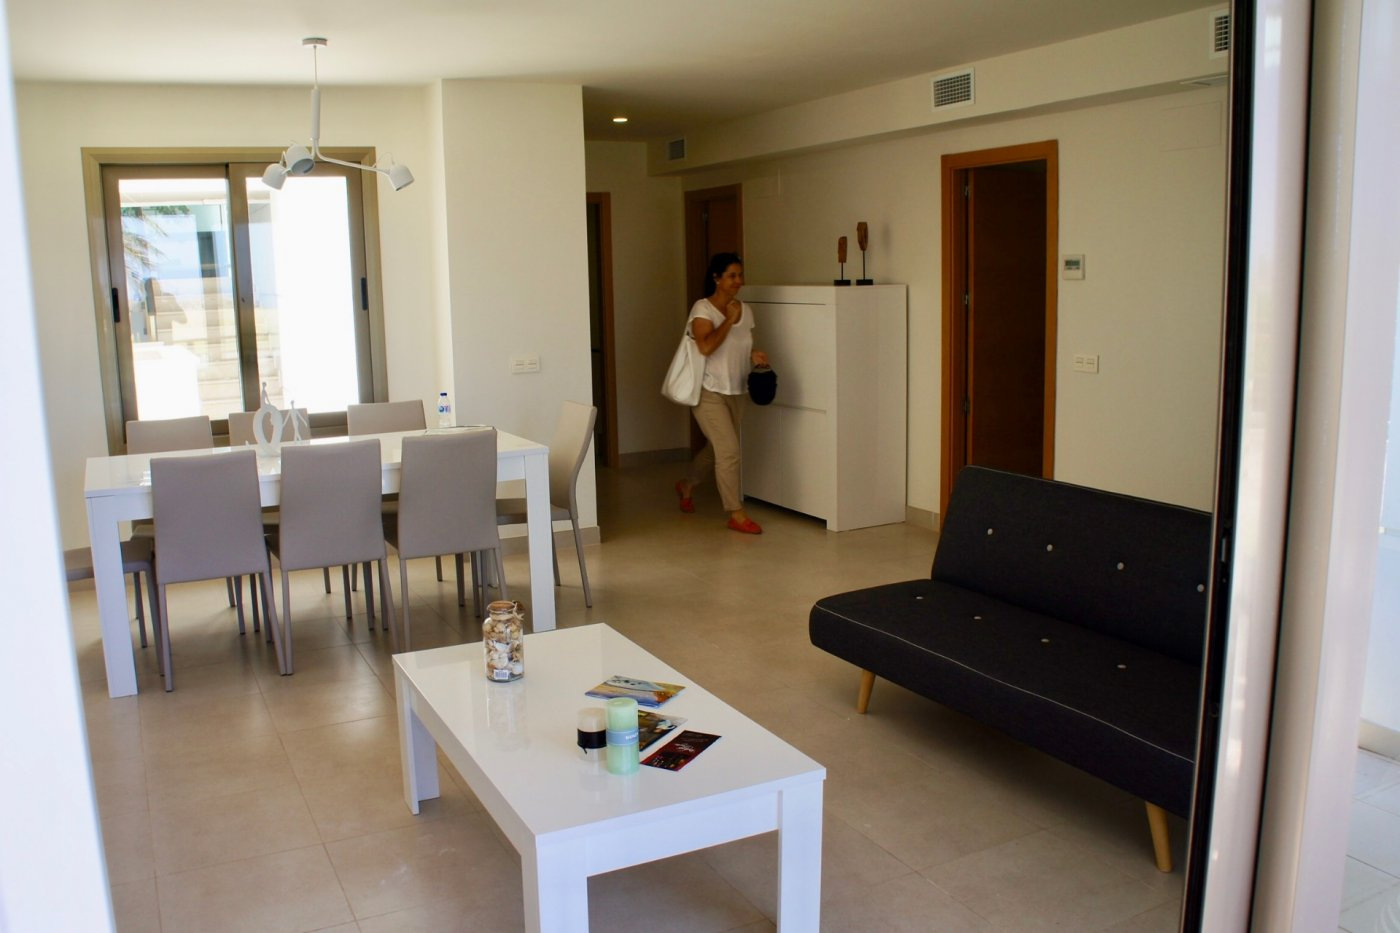 Gallery Image 4 of Big south facing 3 bed, 2 bath apartment with lovely views and 75 m2 terrassesolarium.